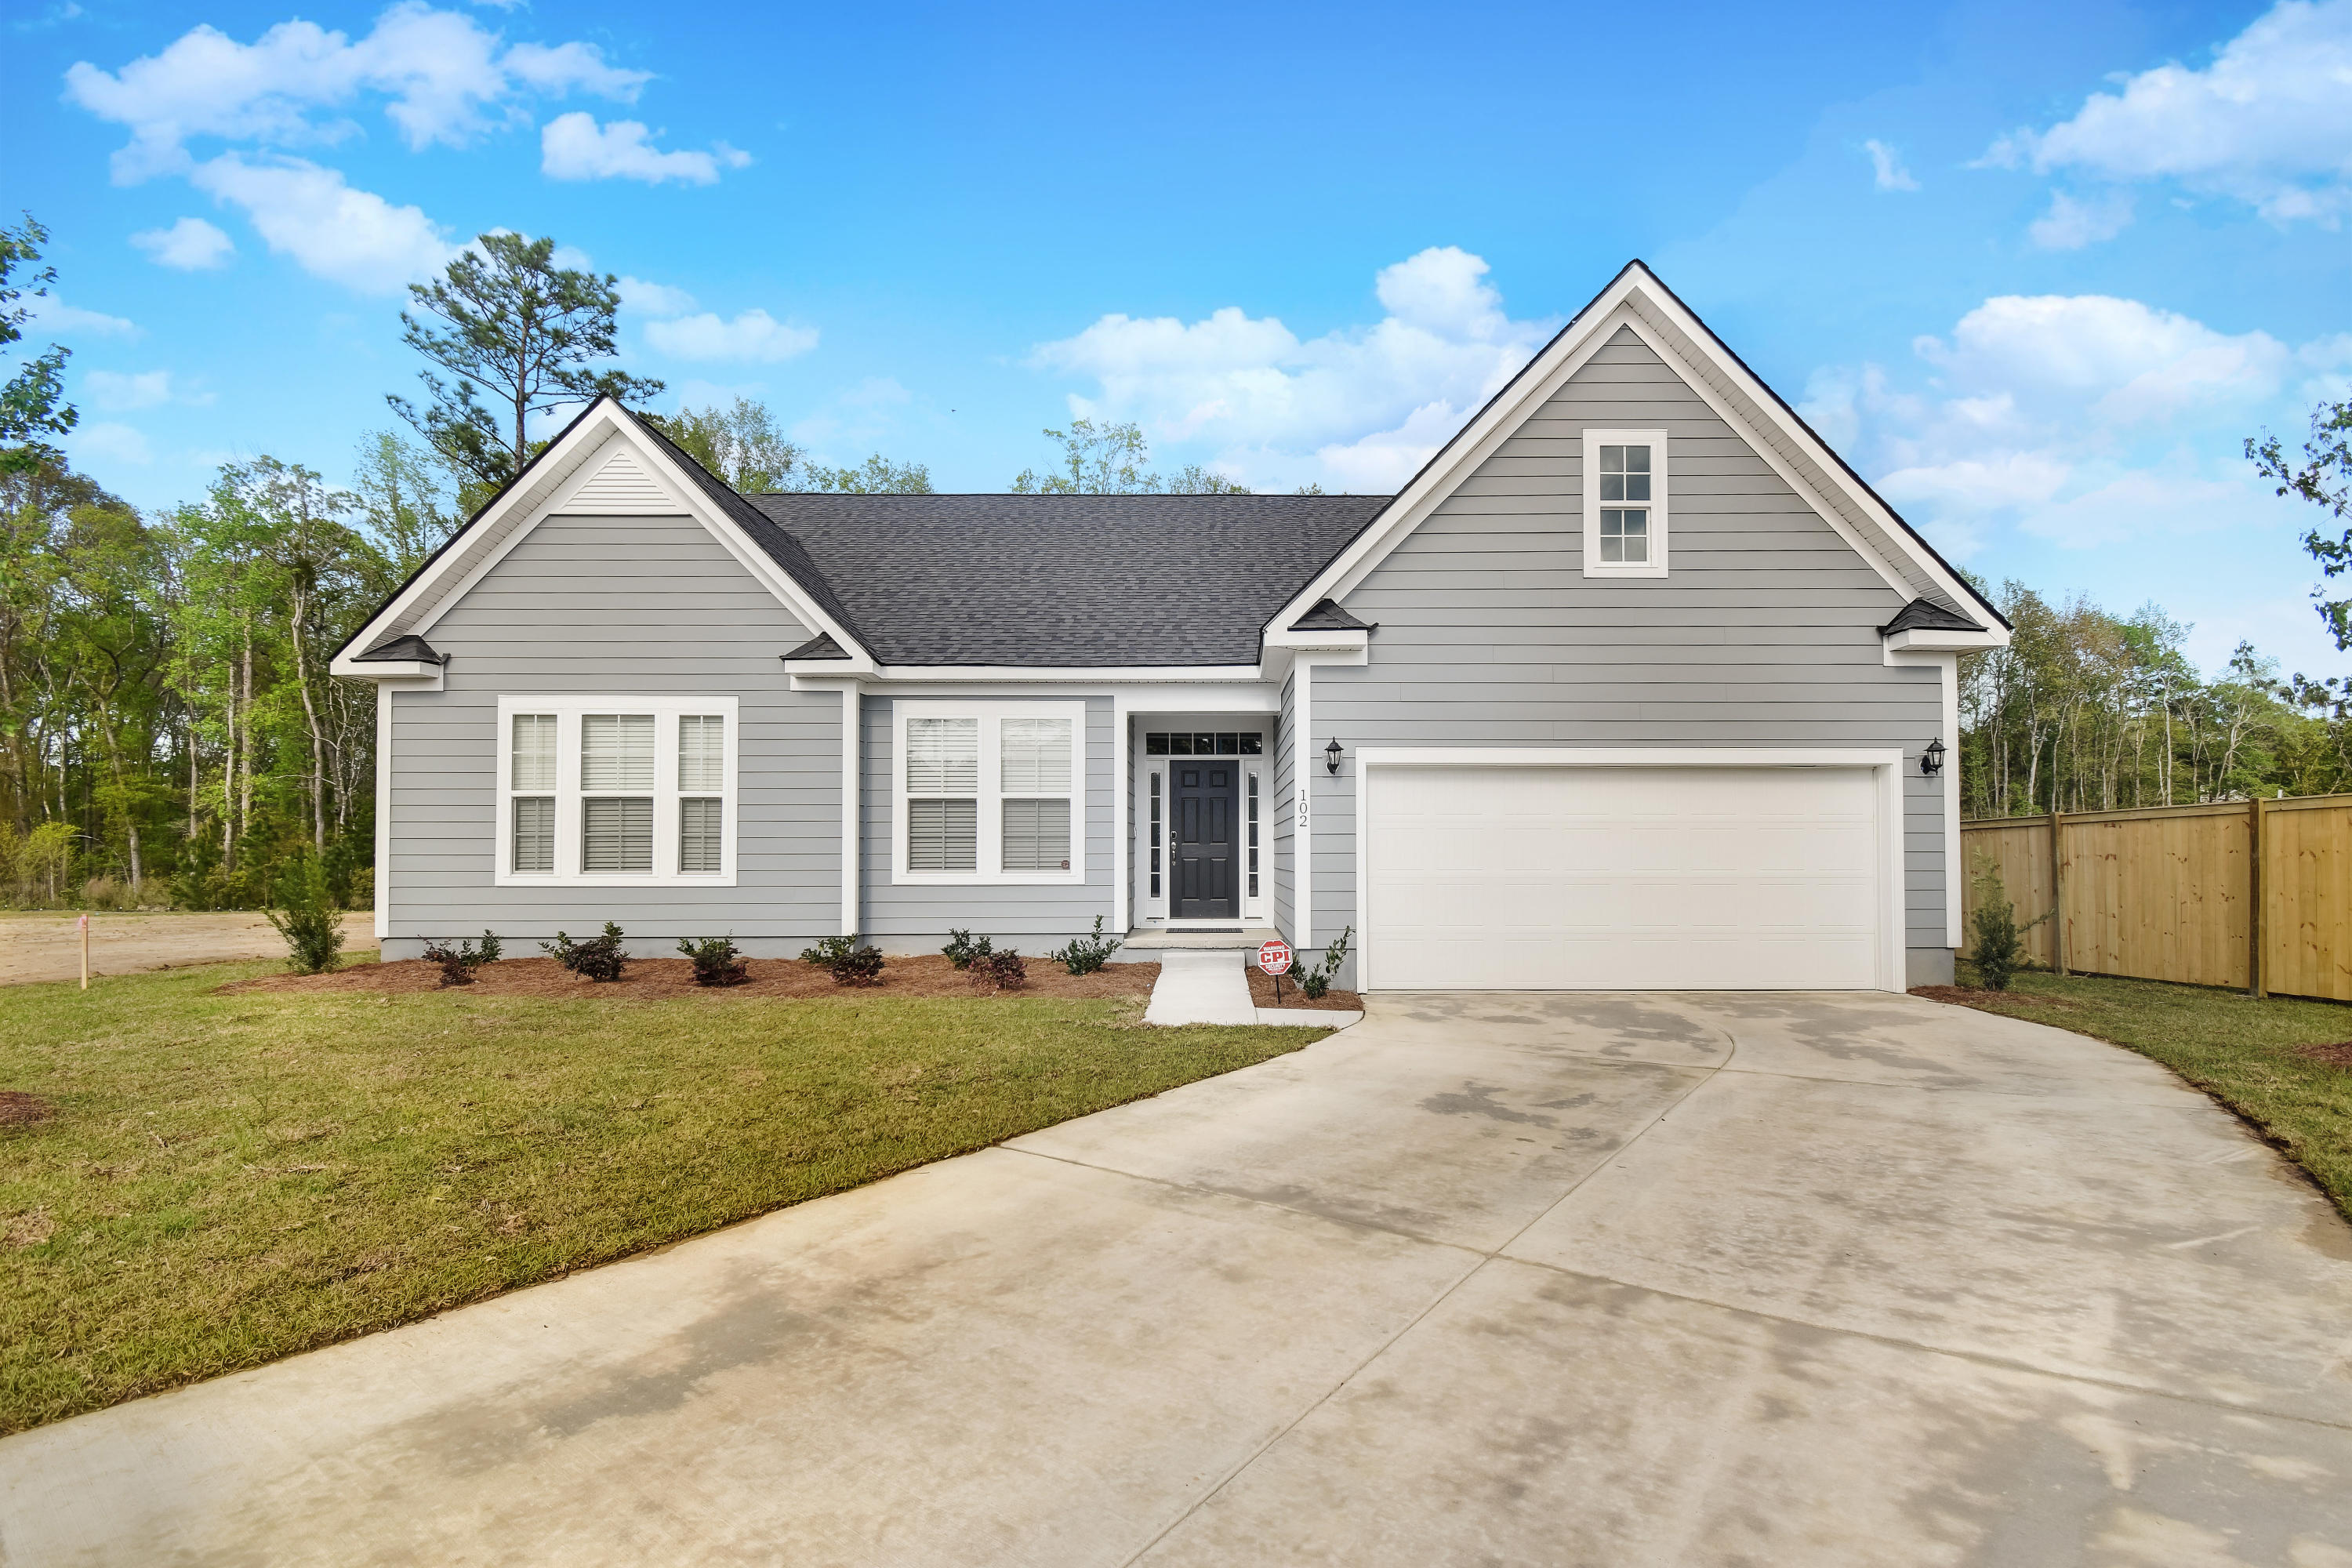 102 True Grit Way Summerville, SC 29483